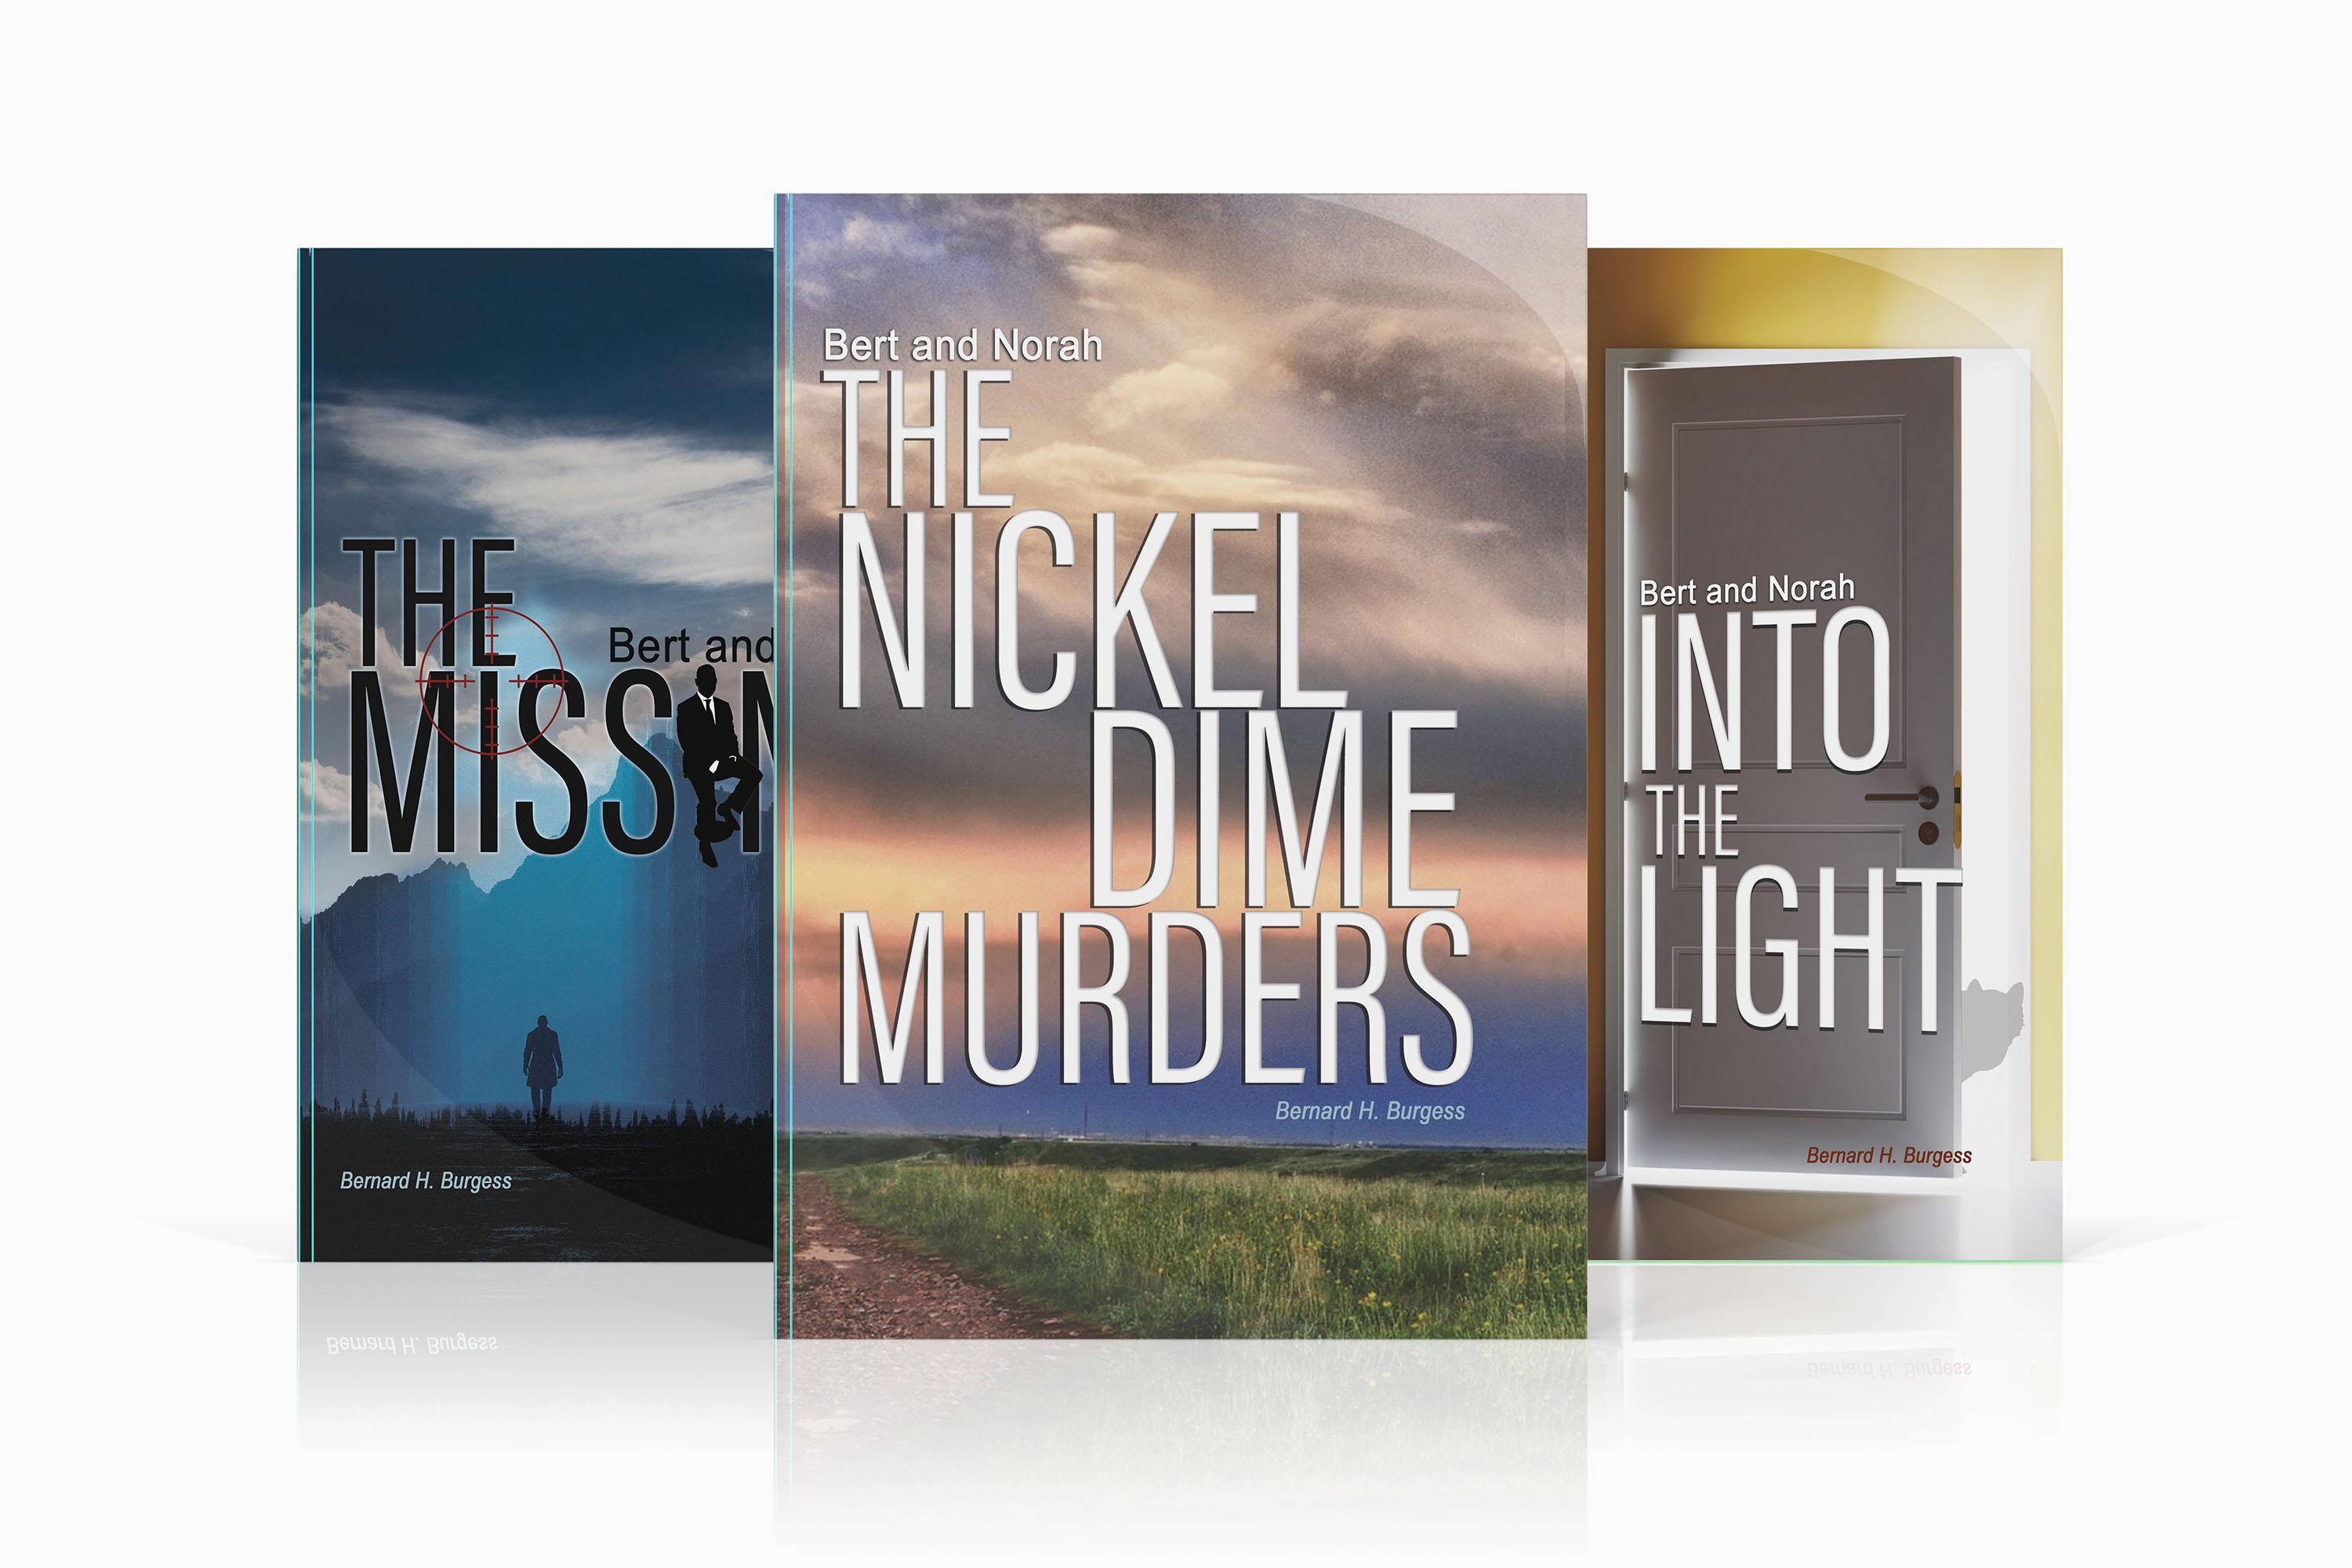 Bert and Norah Mystery Series Book Covers